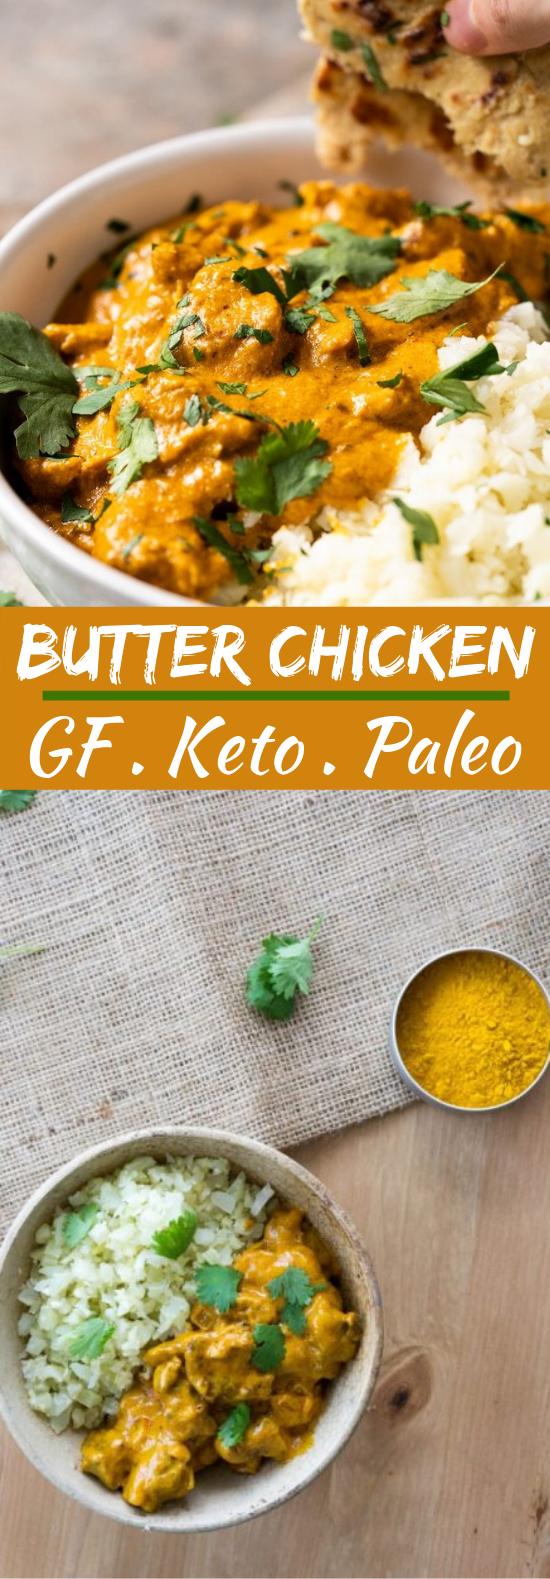 Butter Chicken #keto #glutenfree